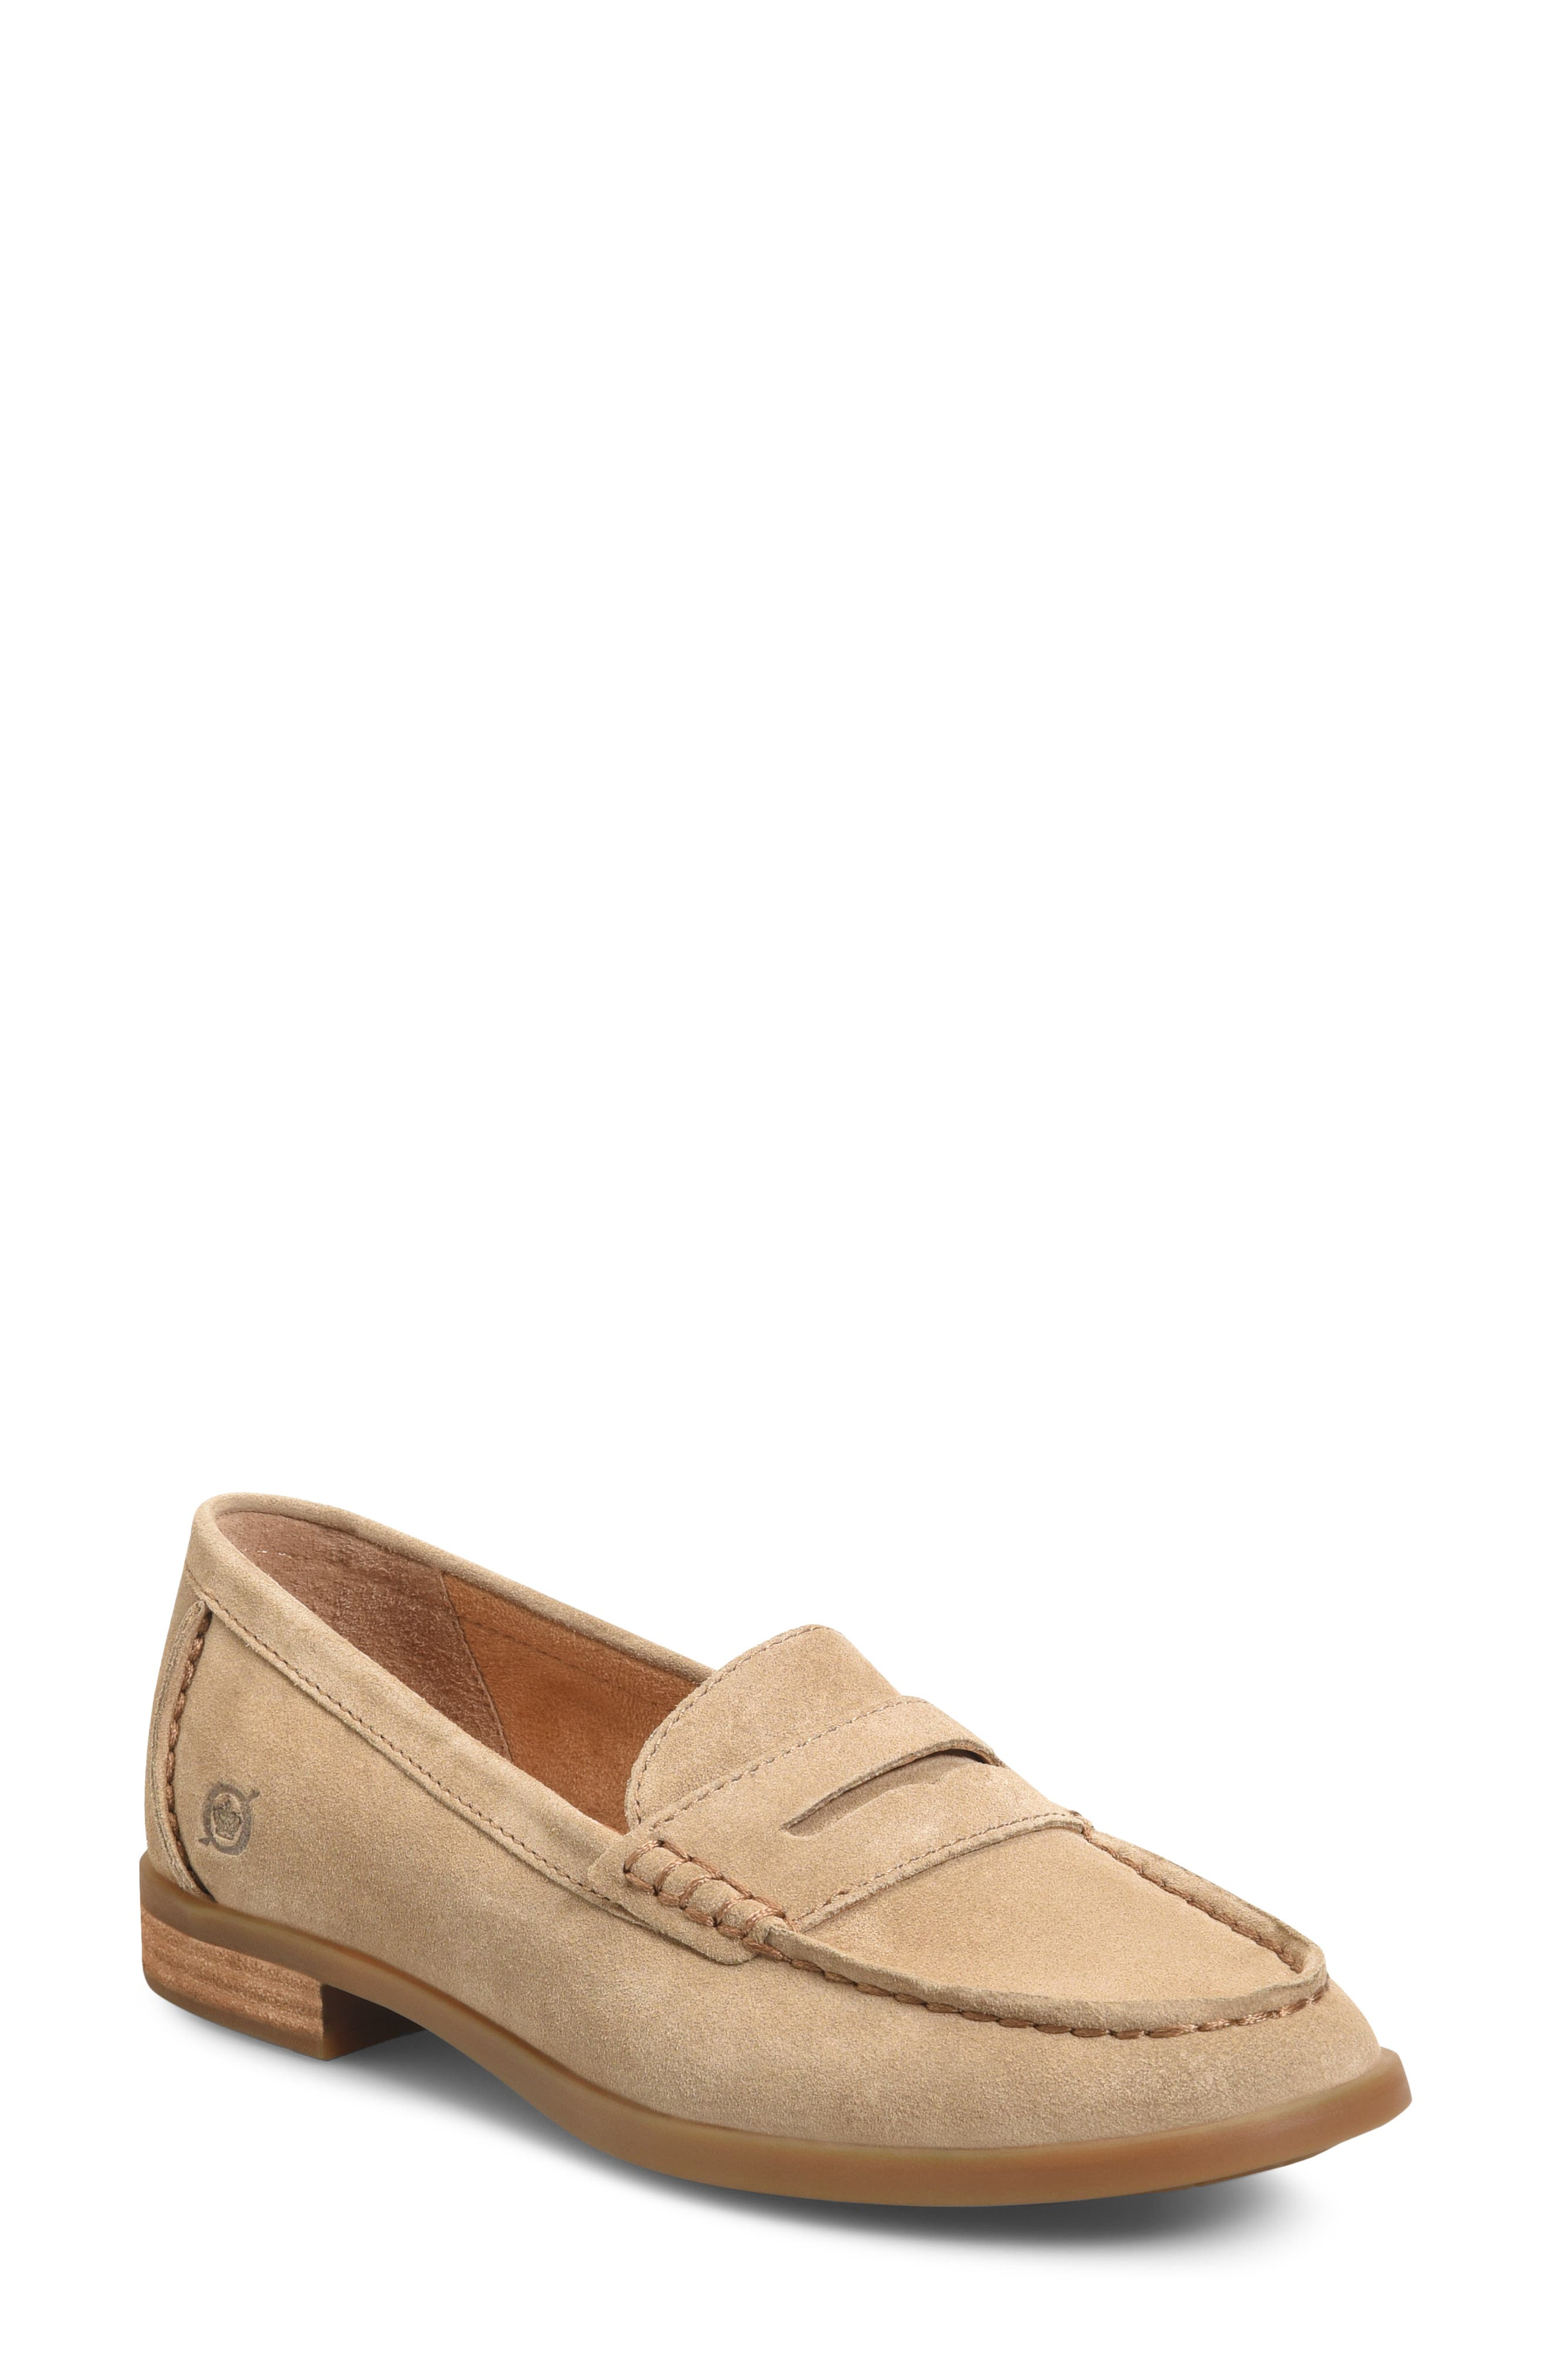 Women's B?rn Bly Penny Loafer